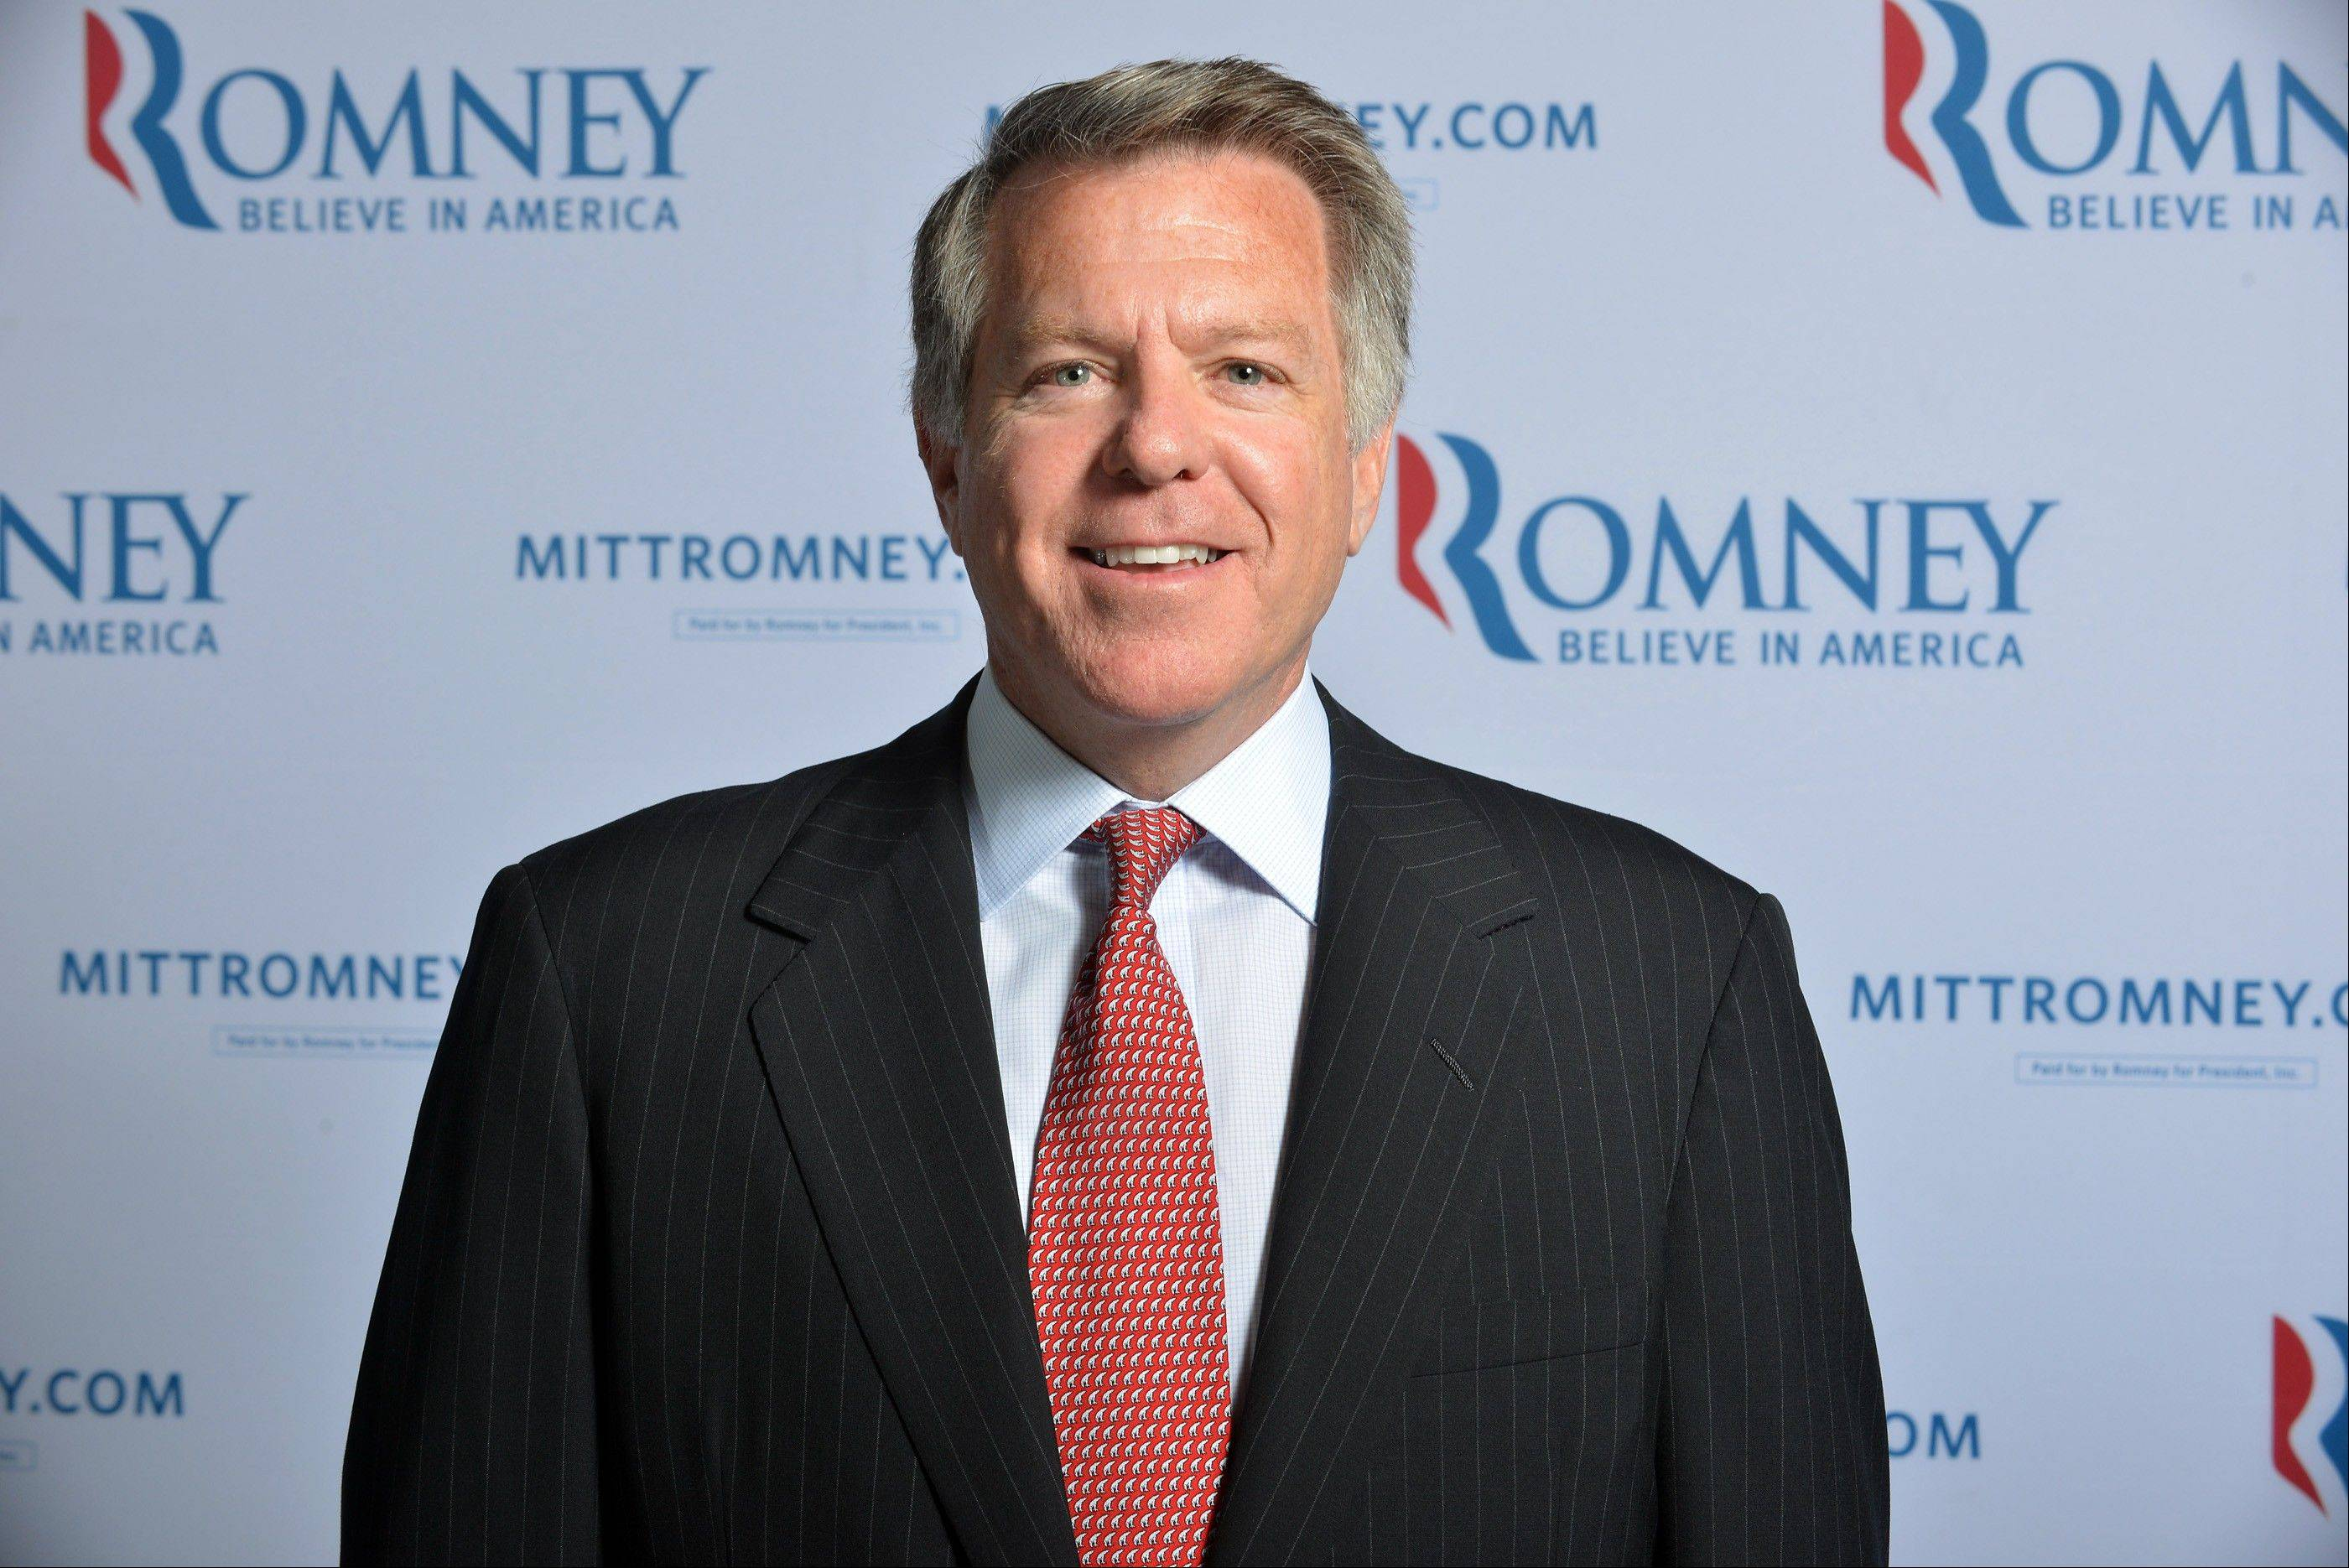 This June 1, 2012 file photo shows Romney campaign senior adviser Bob White at the Romney Campaign's headquarters in Boston. White doesn't have an official title, but he's worked with Romney since both were partners at Bain Capital, the private equity firm Romney helped start. Romney called White for help running the 2002 Olympics in Salt Lake City, and he's been involved in every one of Romney's political campaigns.